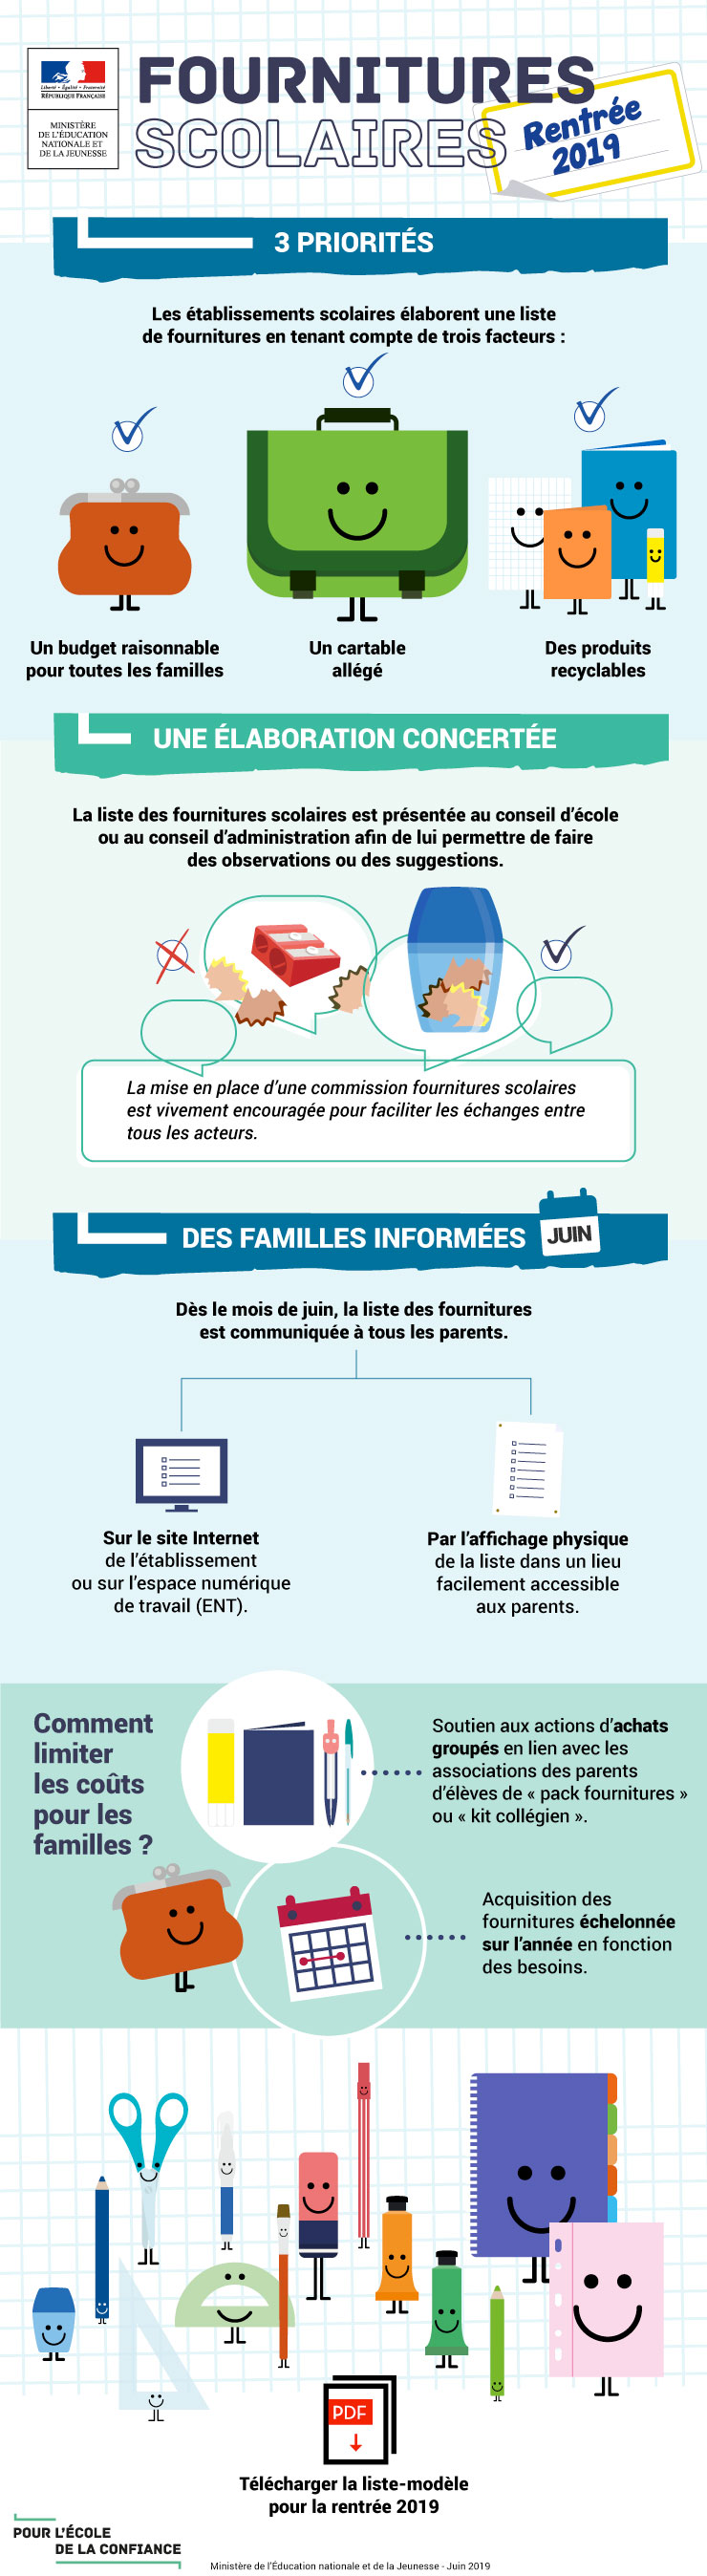 Infographie fournitures 2019